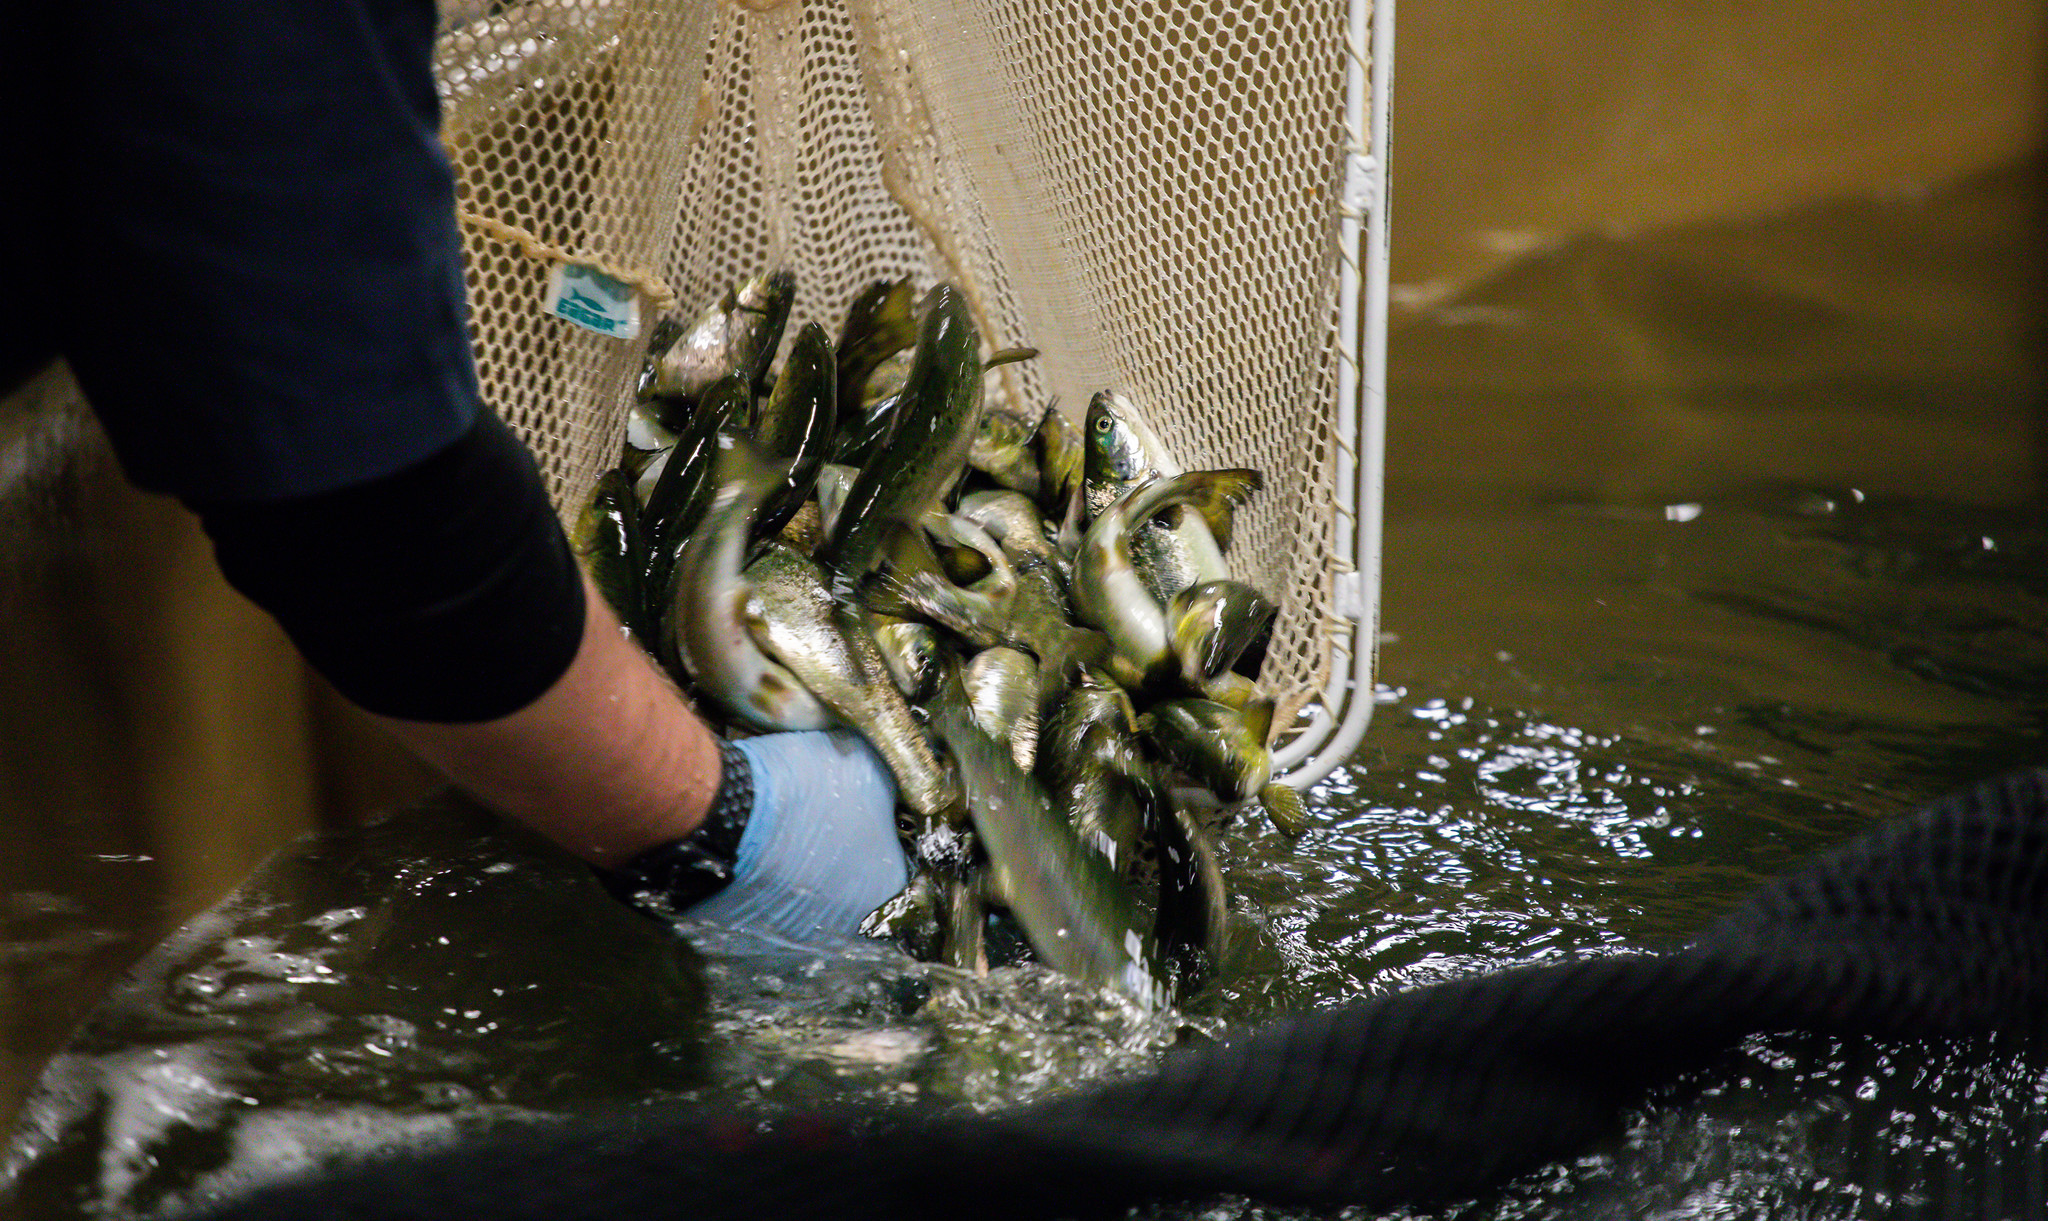 Indiana salmon hatchery to raise nation's first genetically modified animal cleared for human consumption